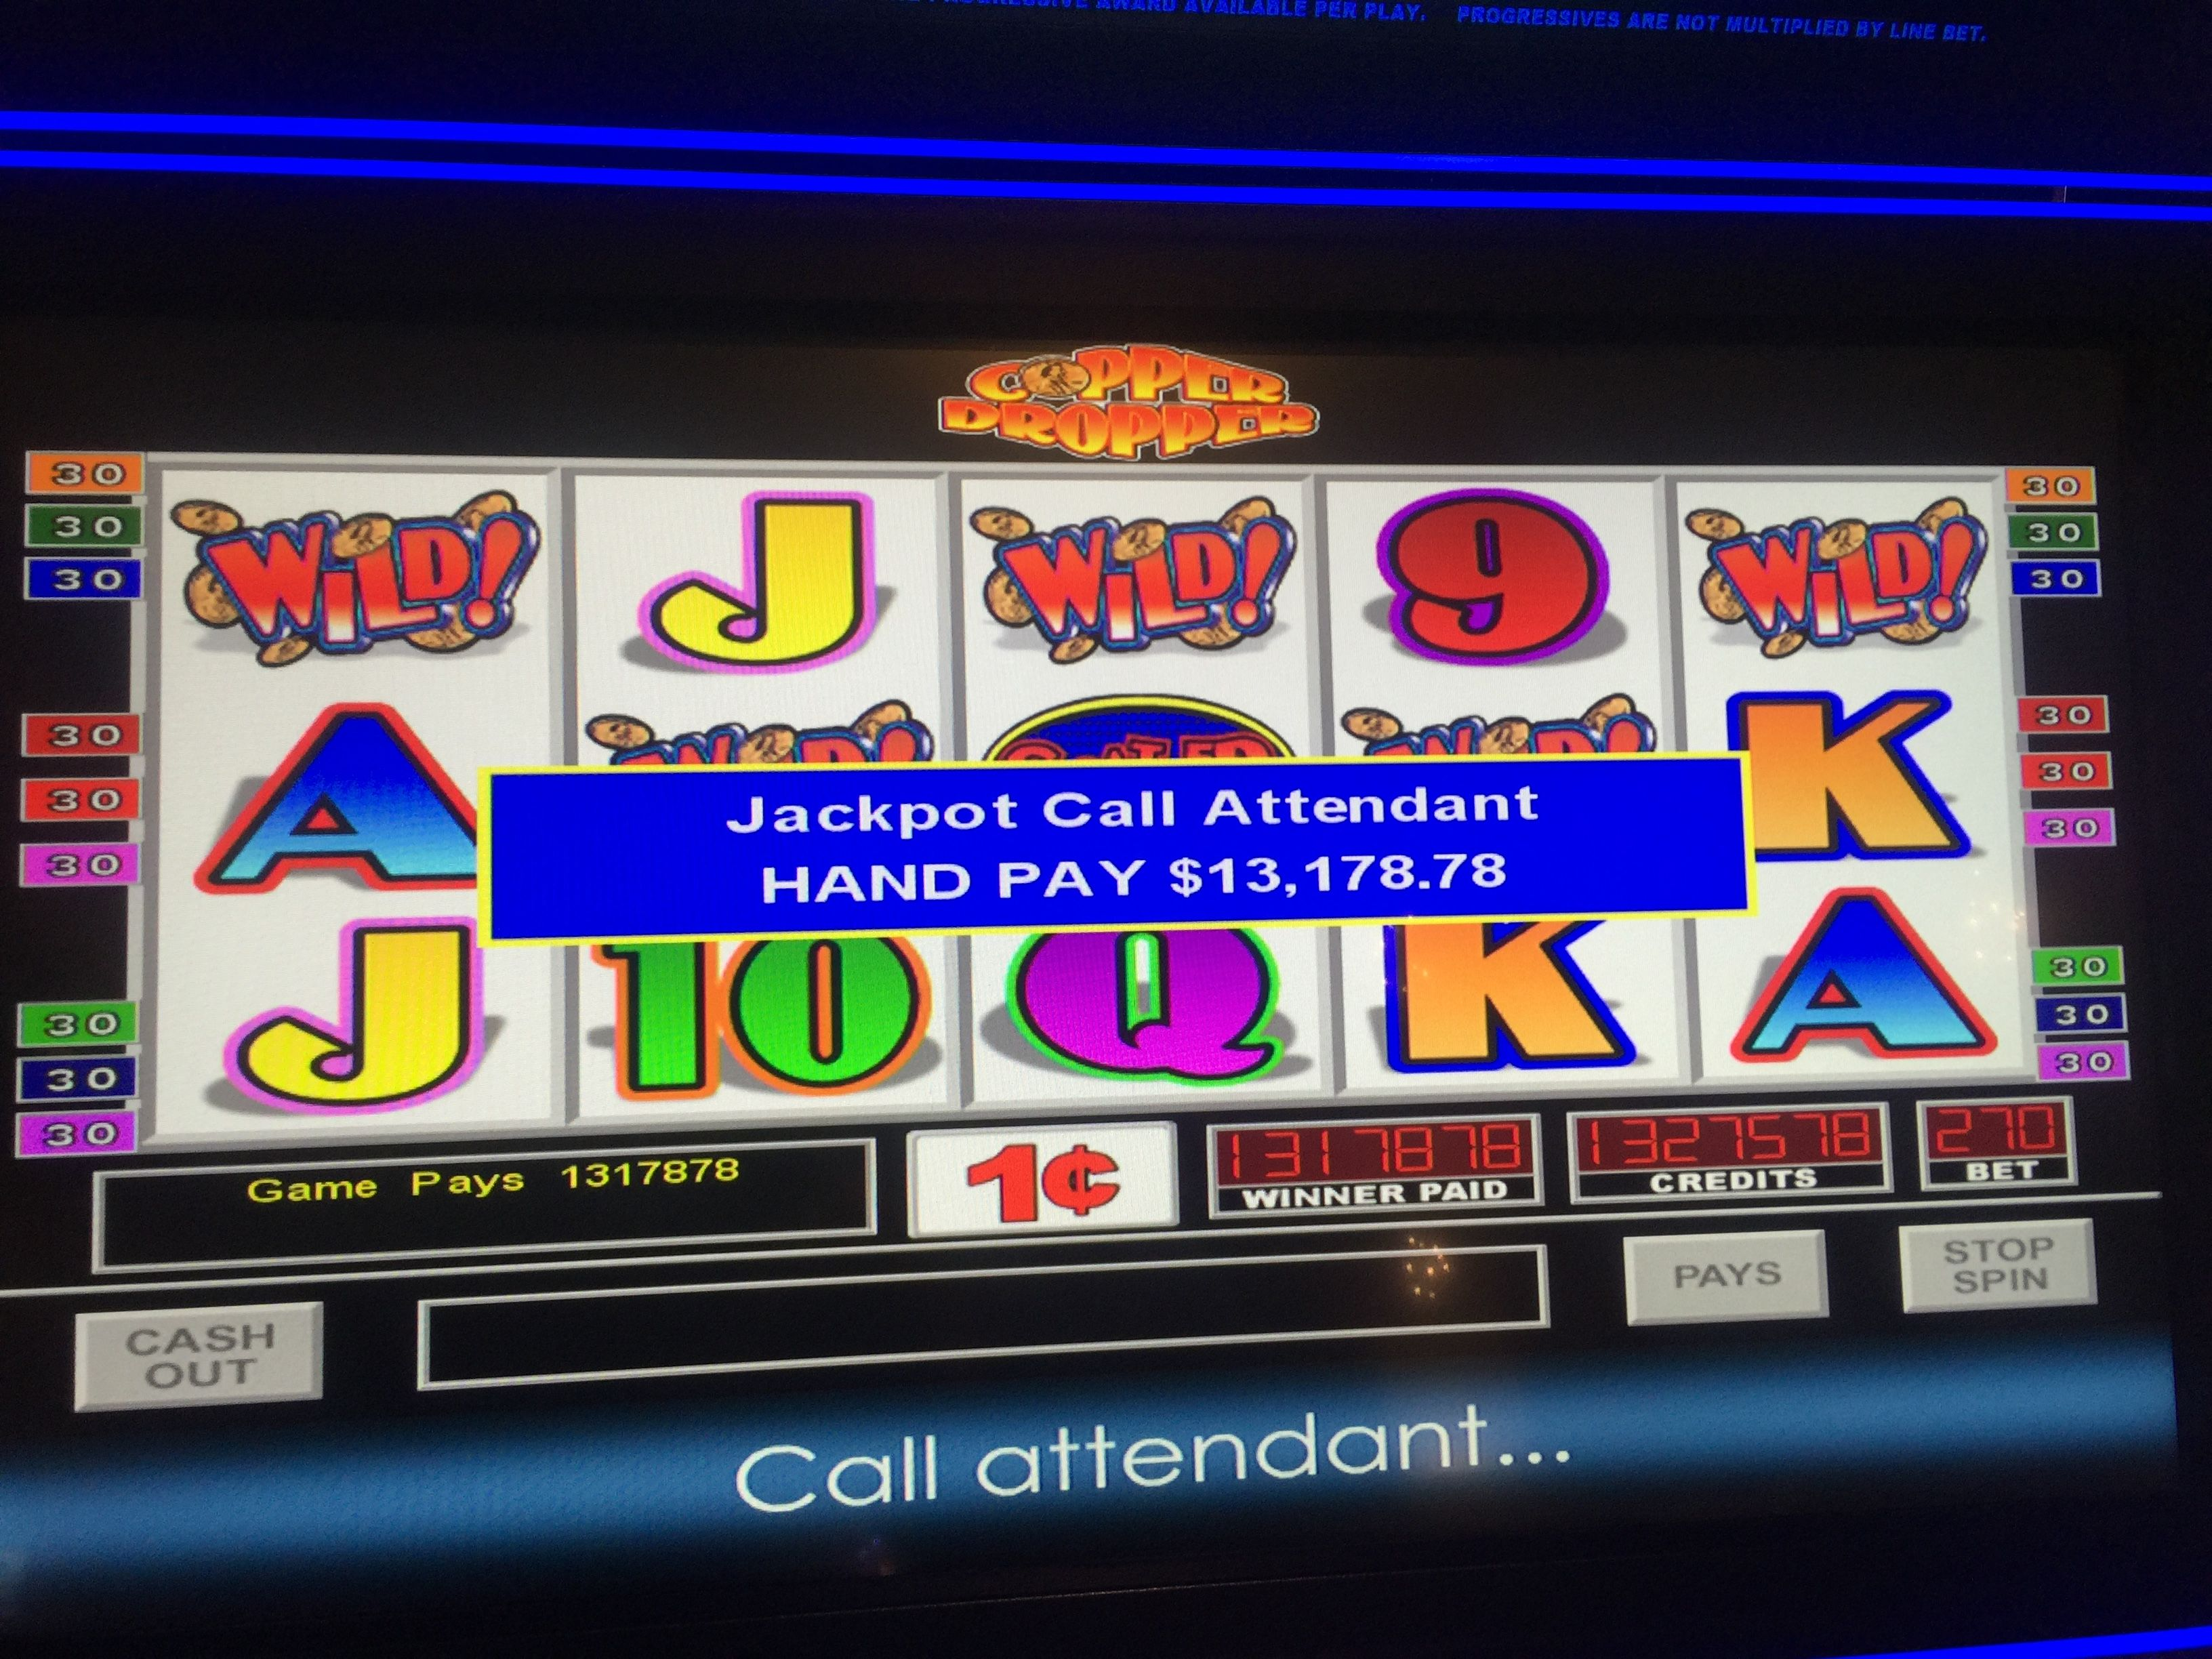 JACKPOT ALERT!! 🤑 One lucky guest just took home some